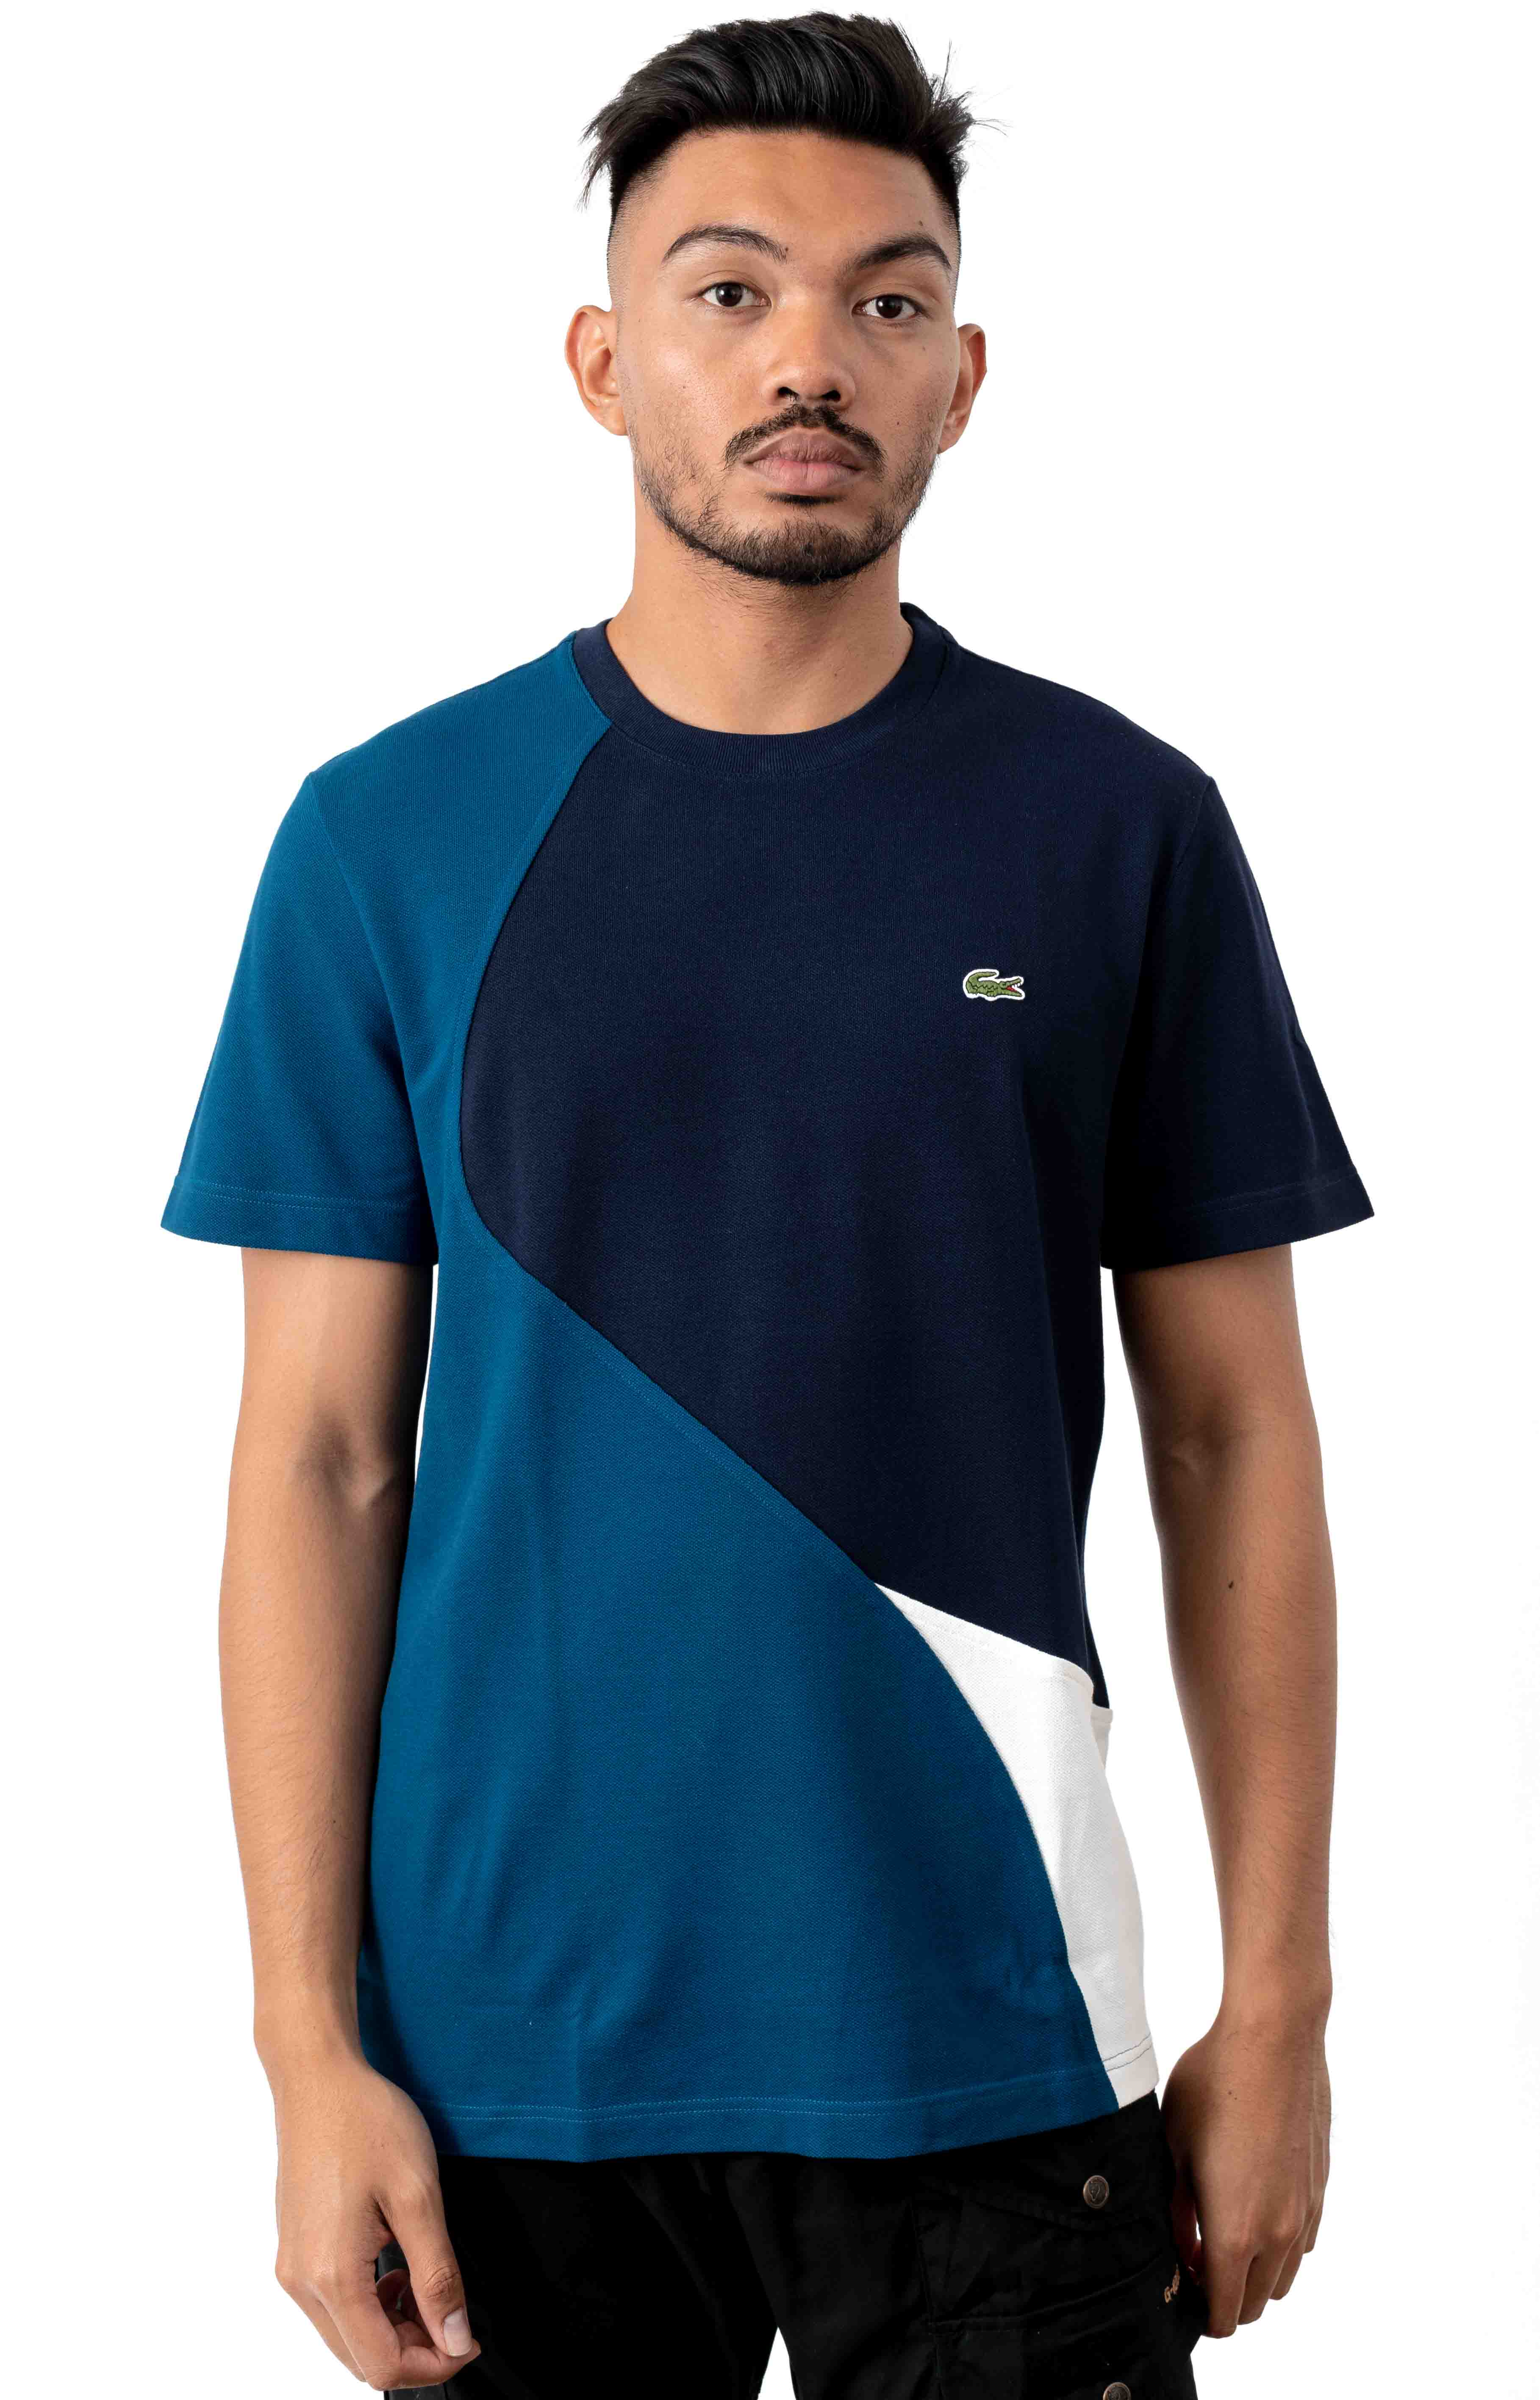 Crewneck Color-Blocked Thermoregulating Piqué T-Shirt - Blue/White/Navy Blue